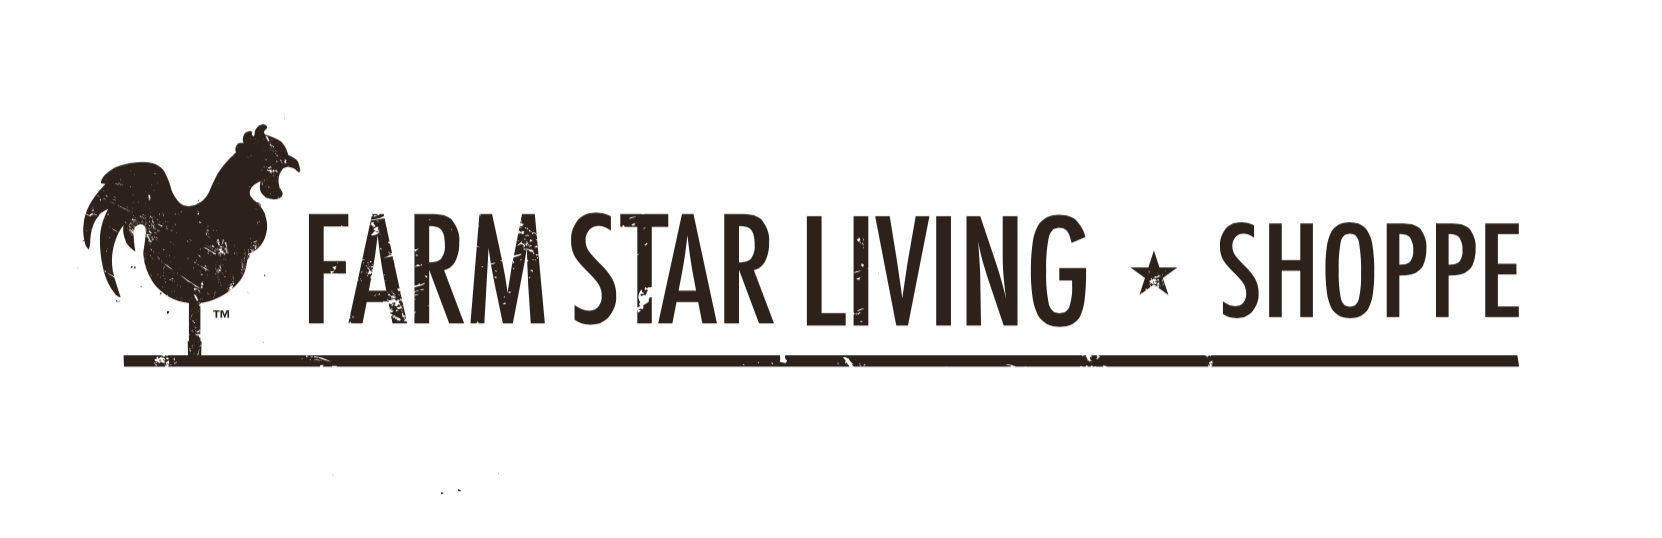 Farm Star Living